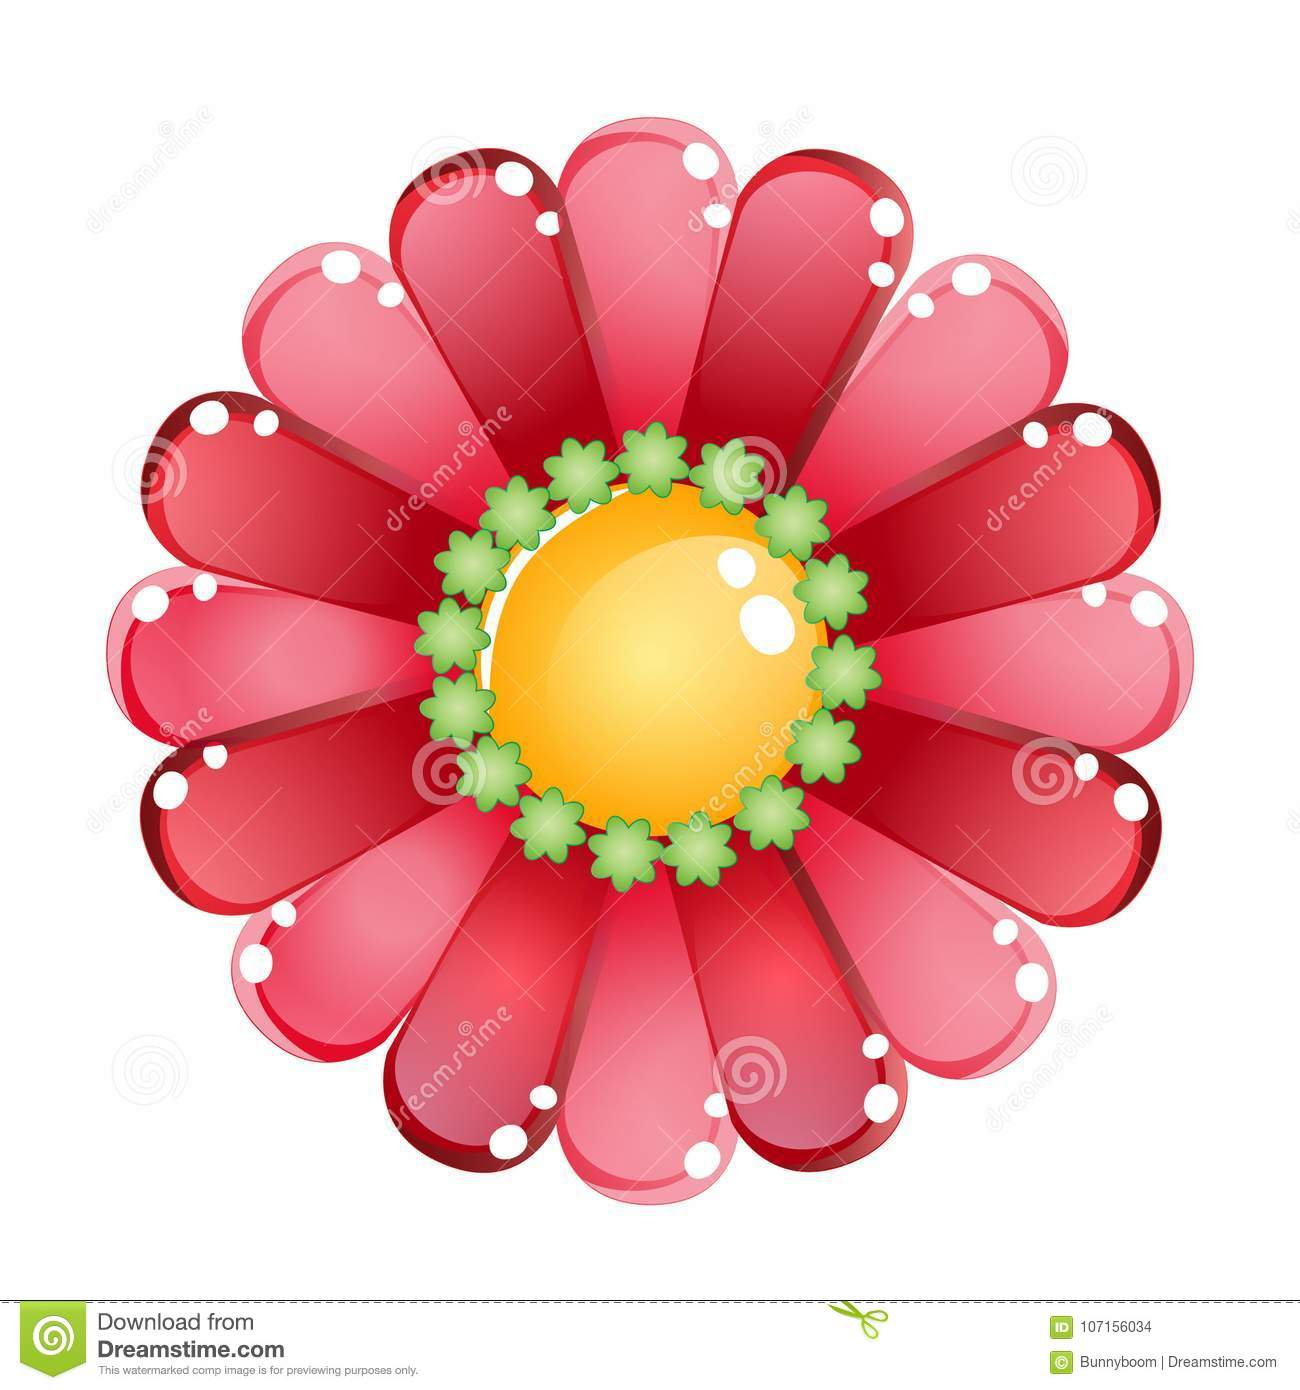 Flower Color Red Glossy Jelly Icon. Stock Vector - Illustration of ...